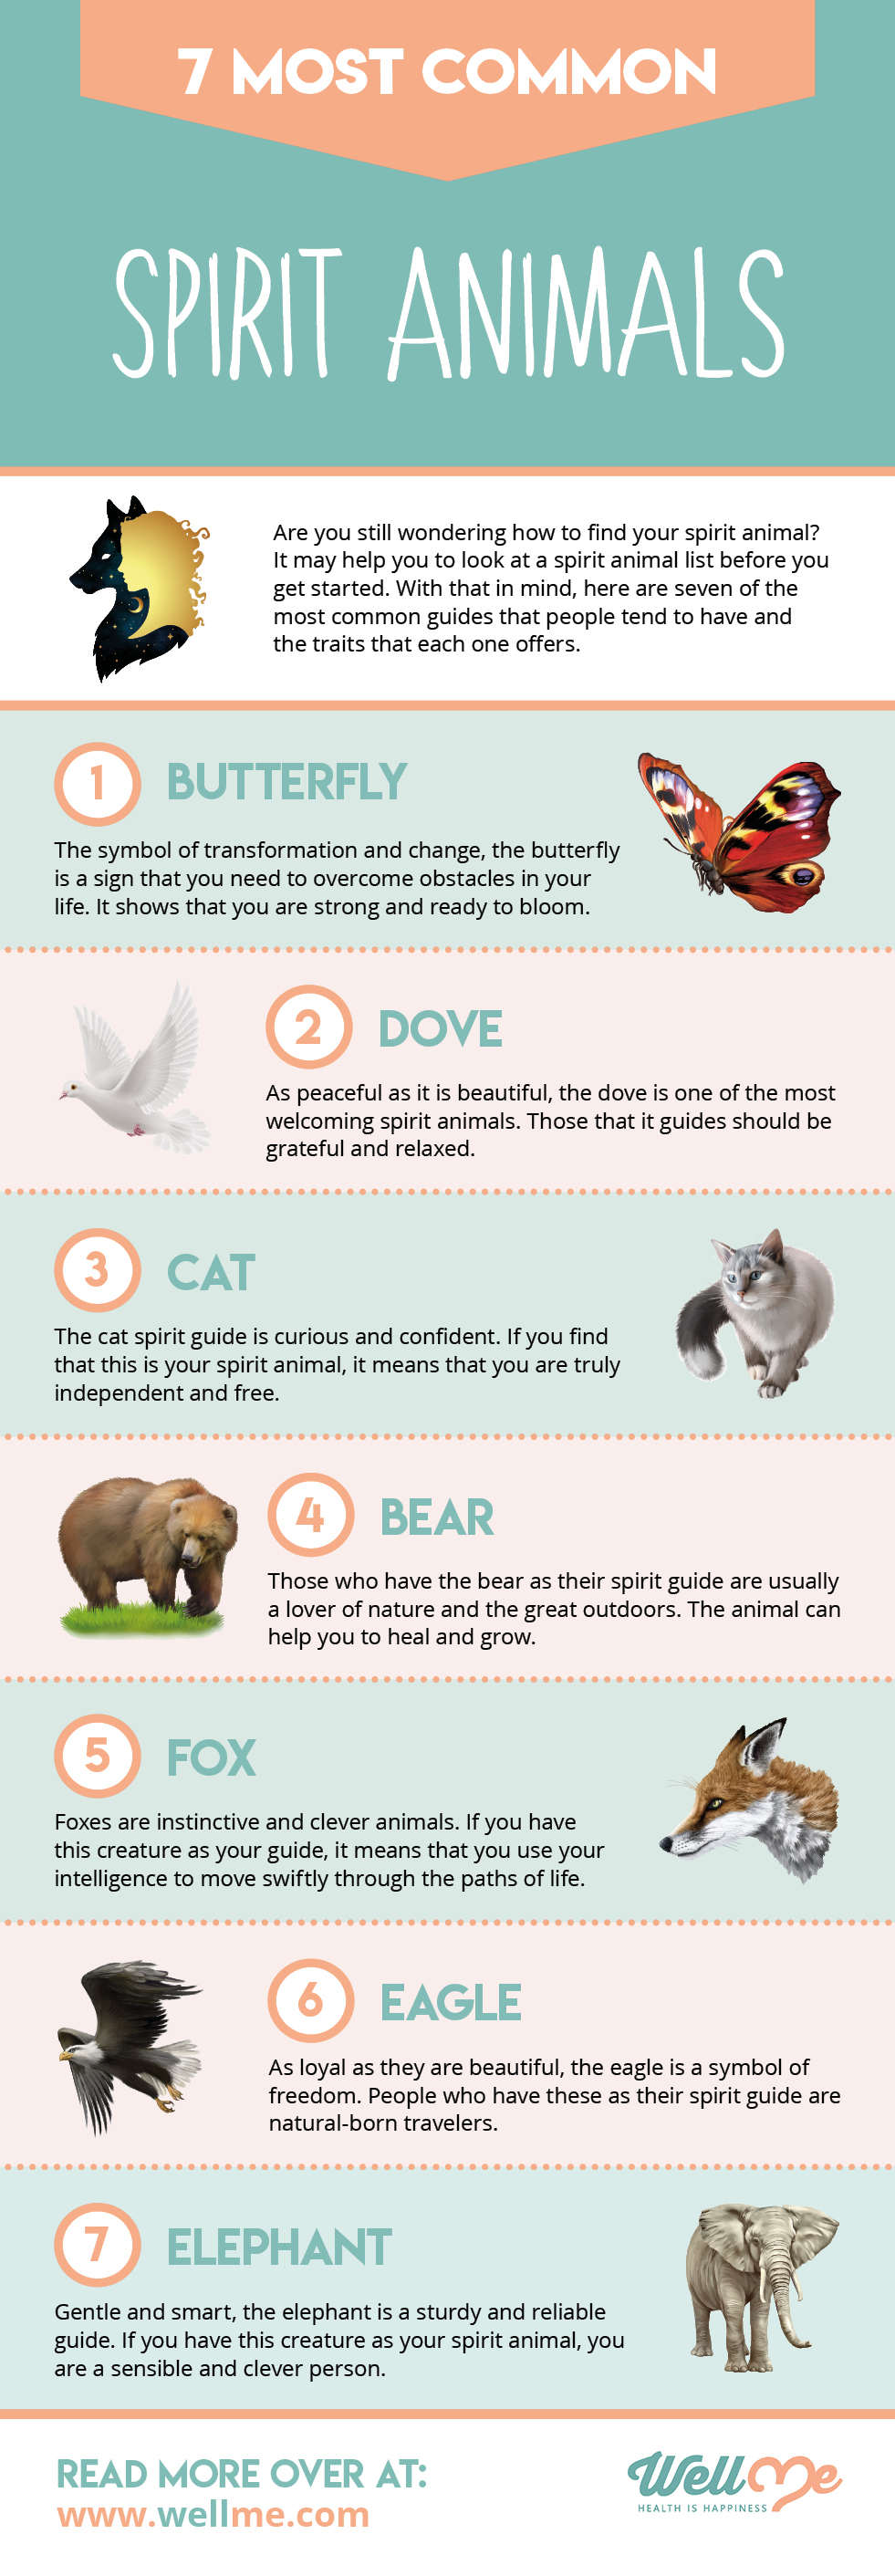 7 Most Common Spirit Animals - What is My Spirit Animal infographic